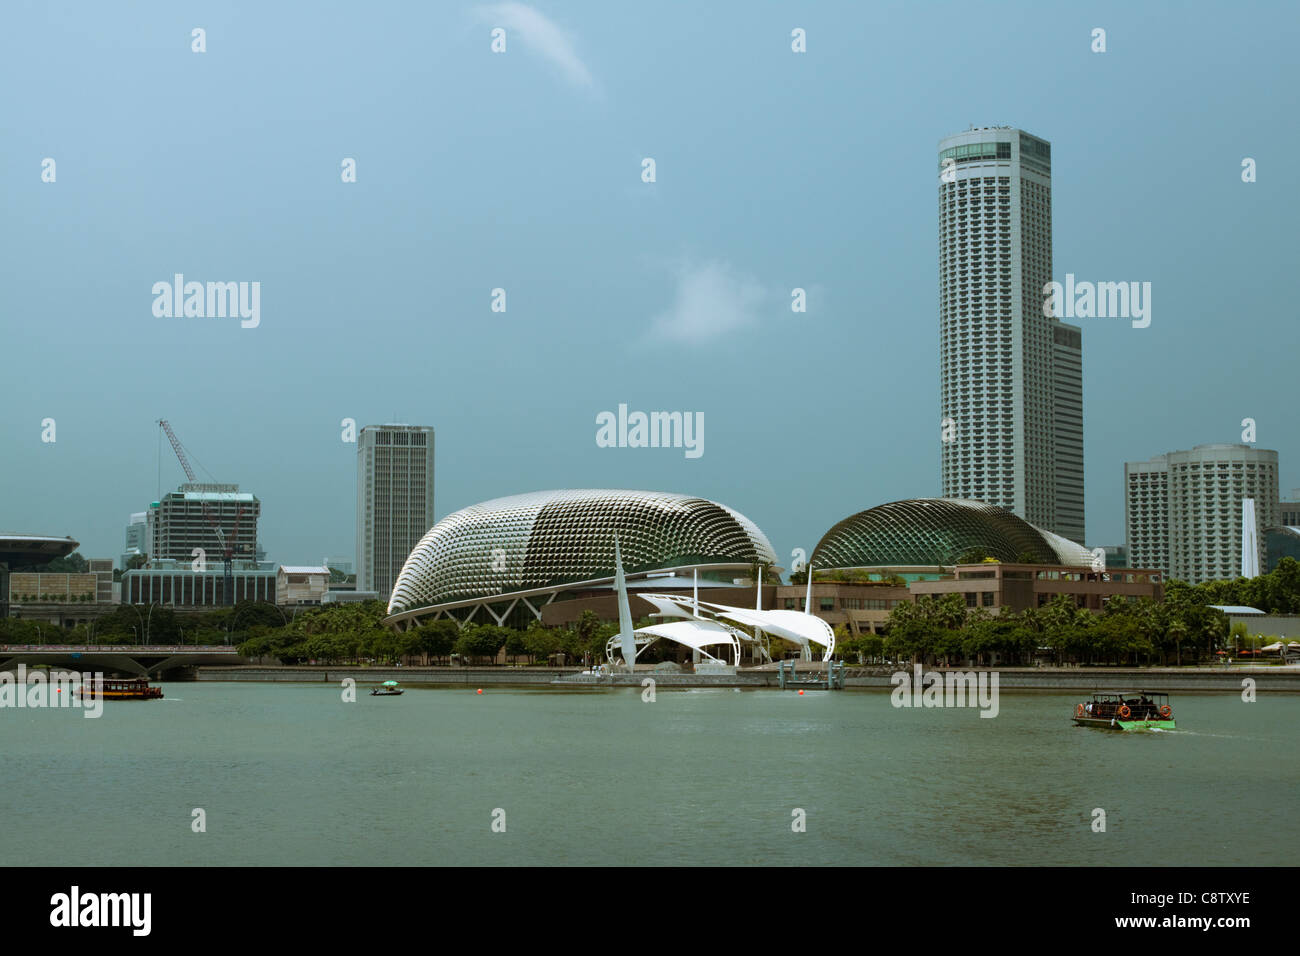 Performing Arts Center, Esplanade, Marina Bay, locally known as the durian due to its resemblance to the fruit, - Stock Image